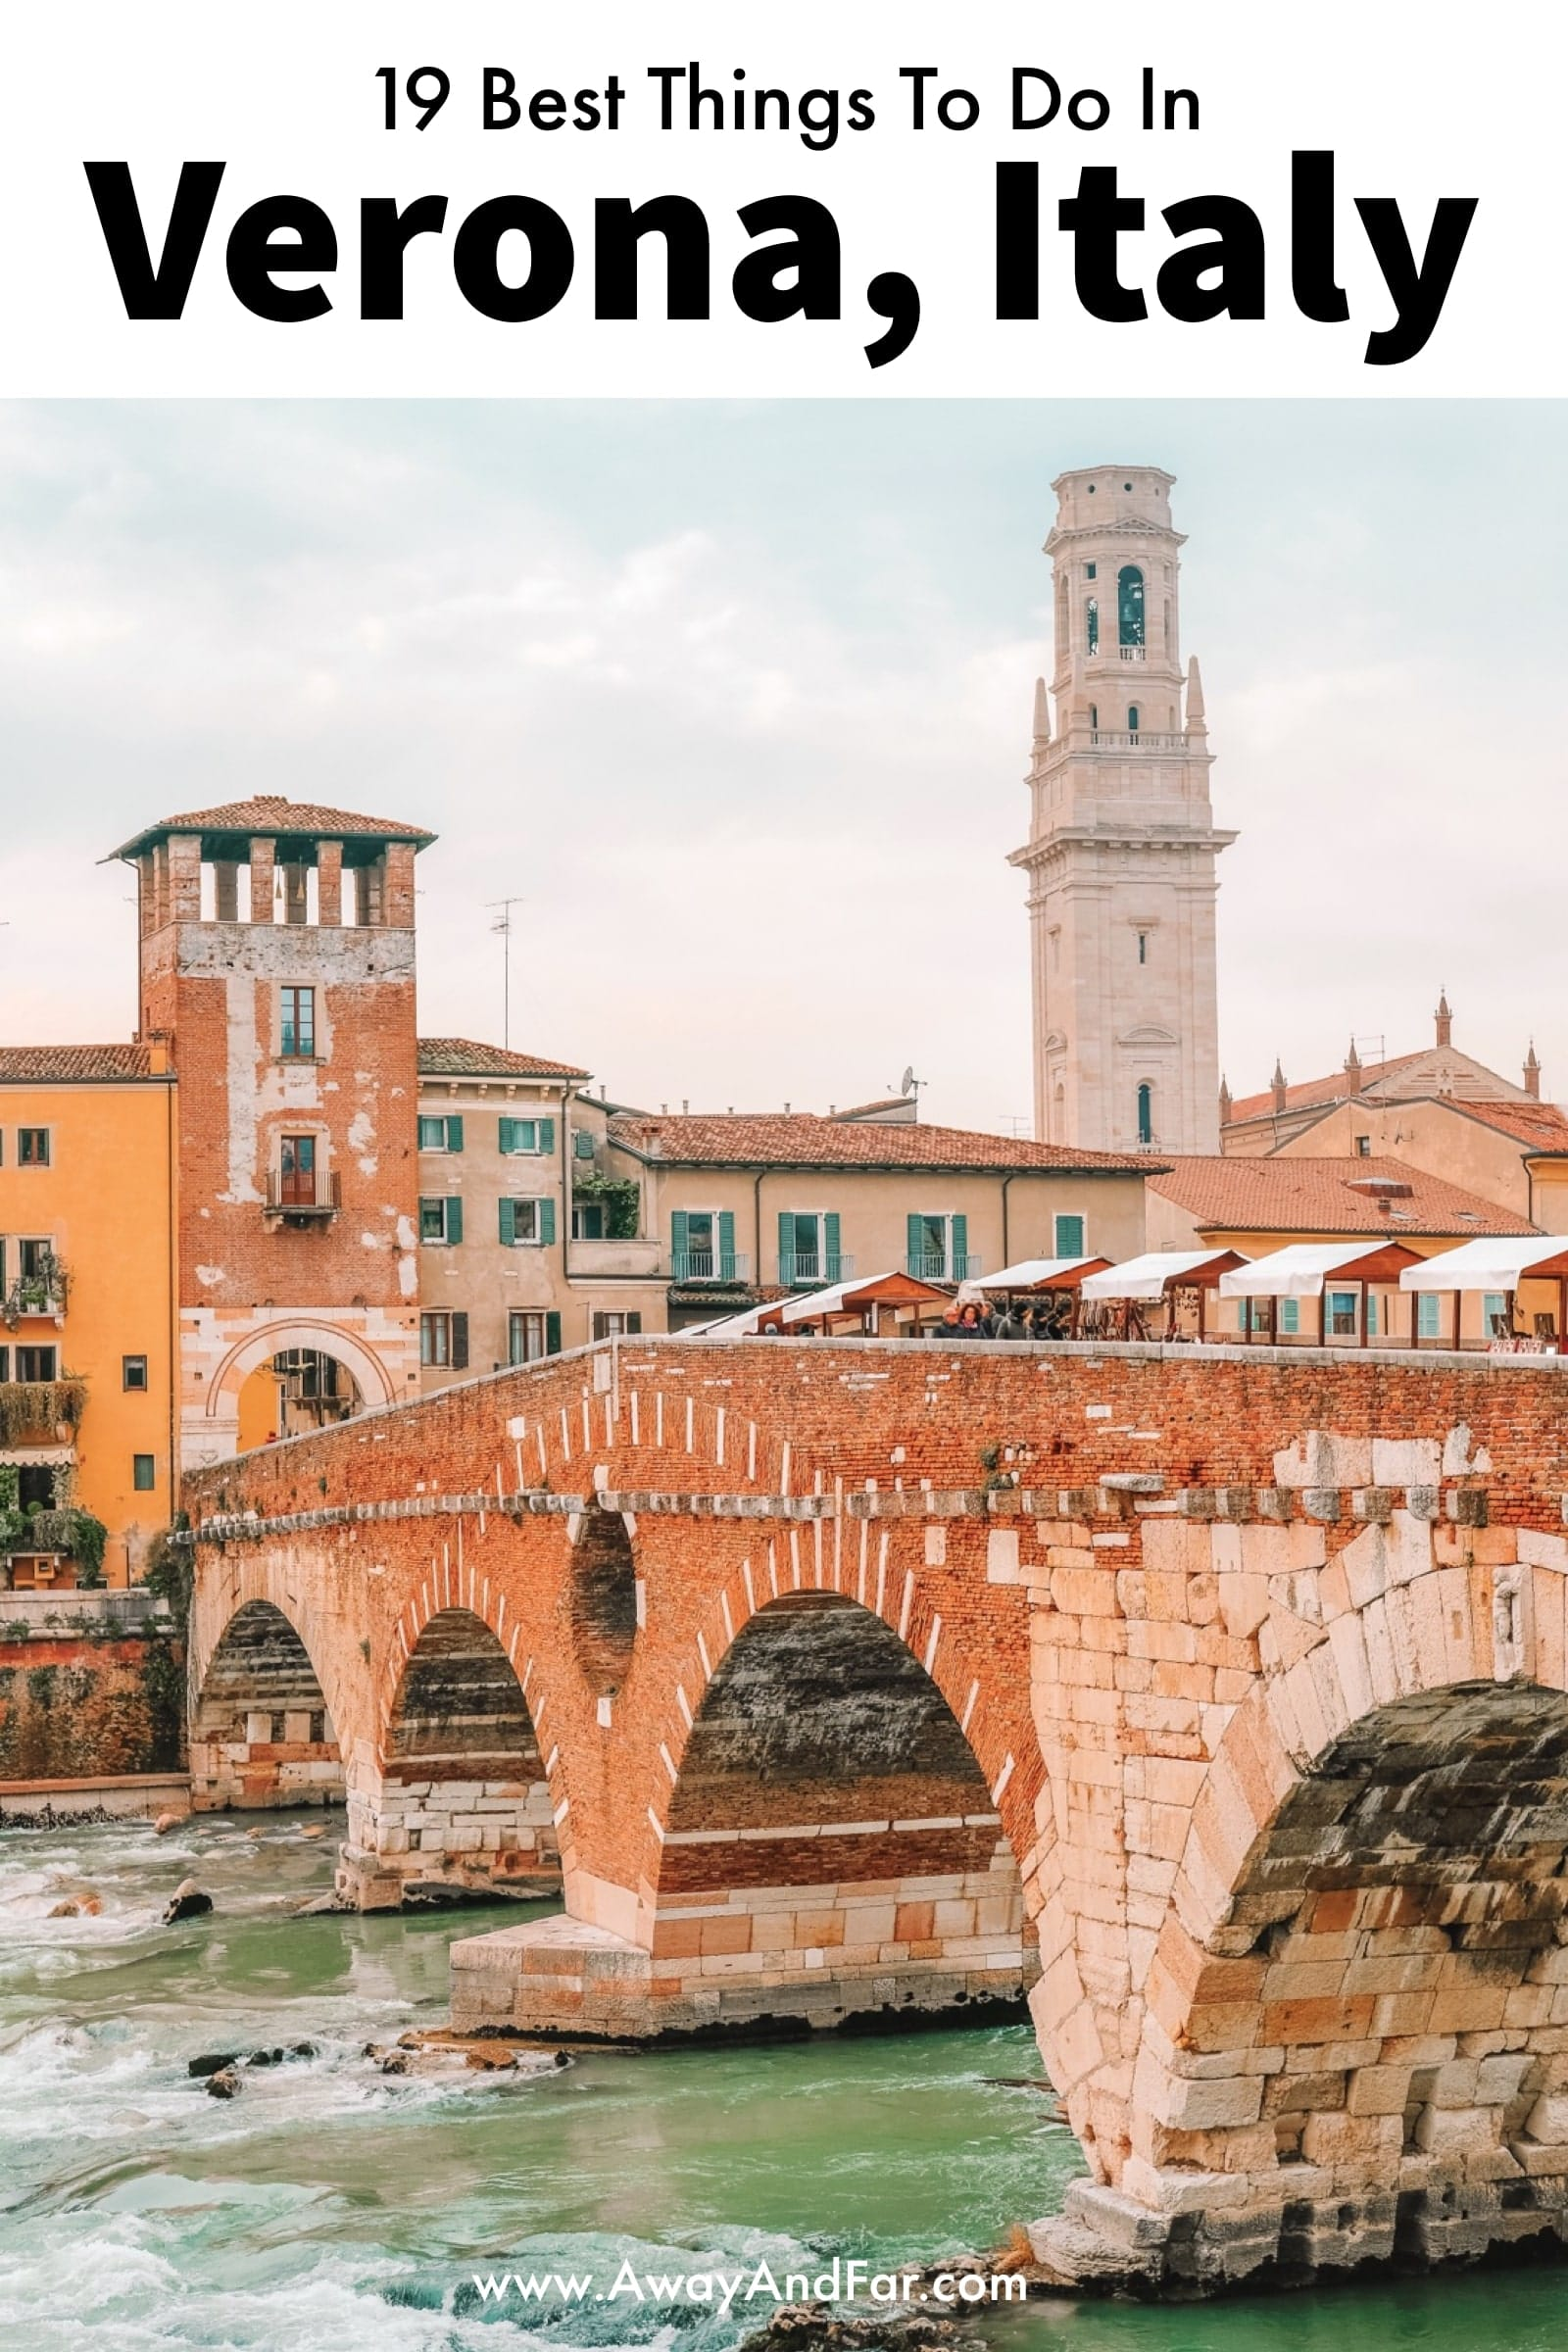 19 Best Things To Do In Verona, Italy (1)